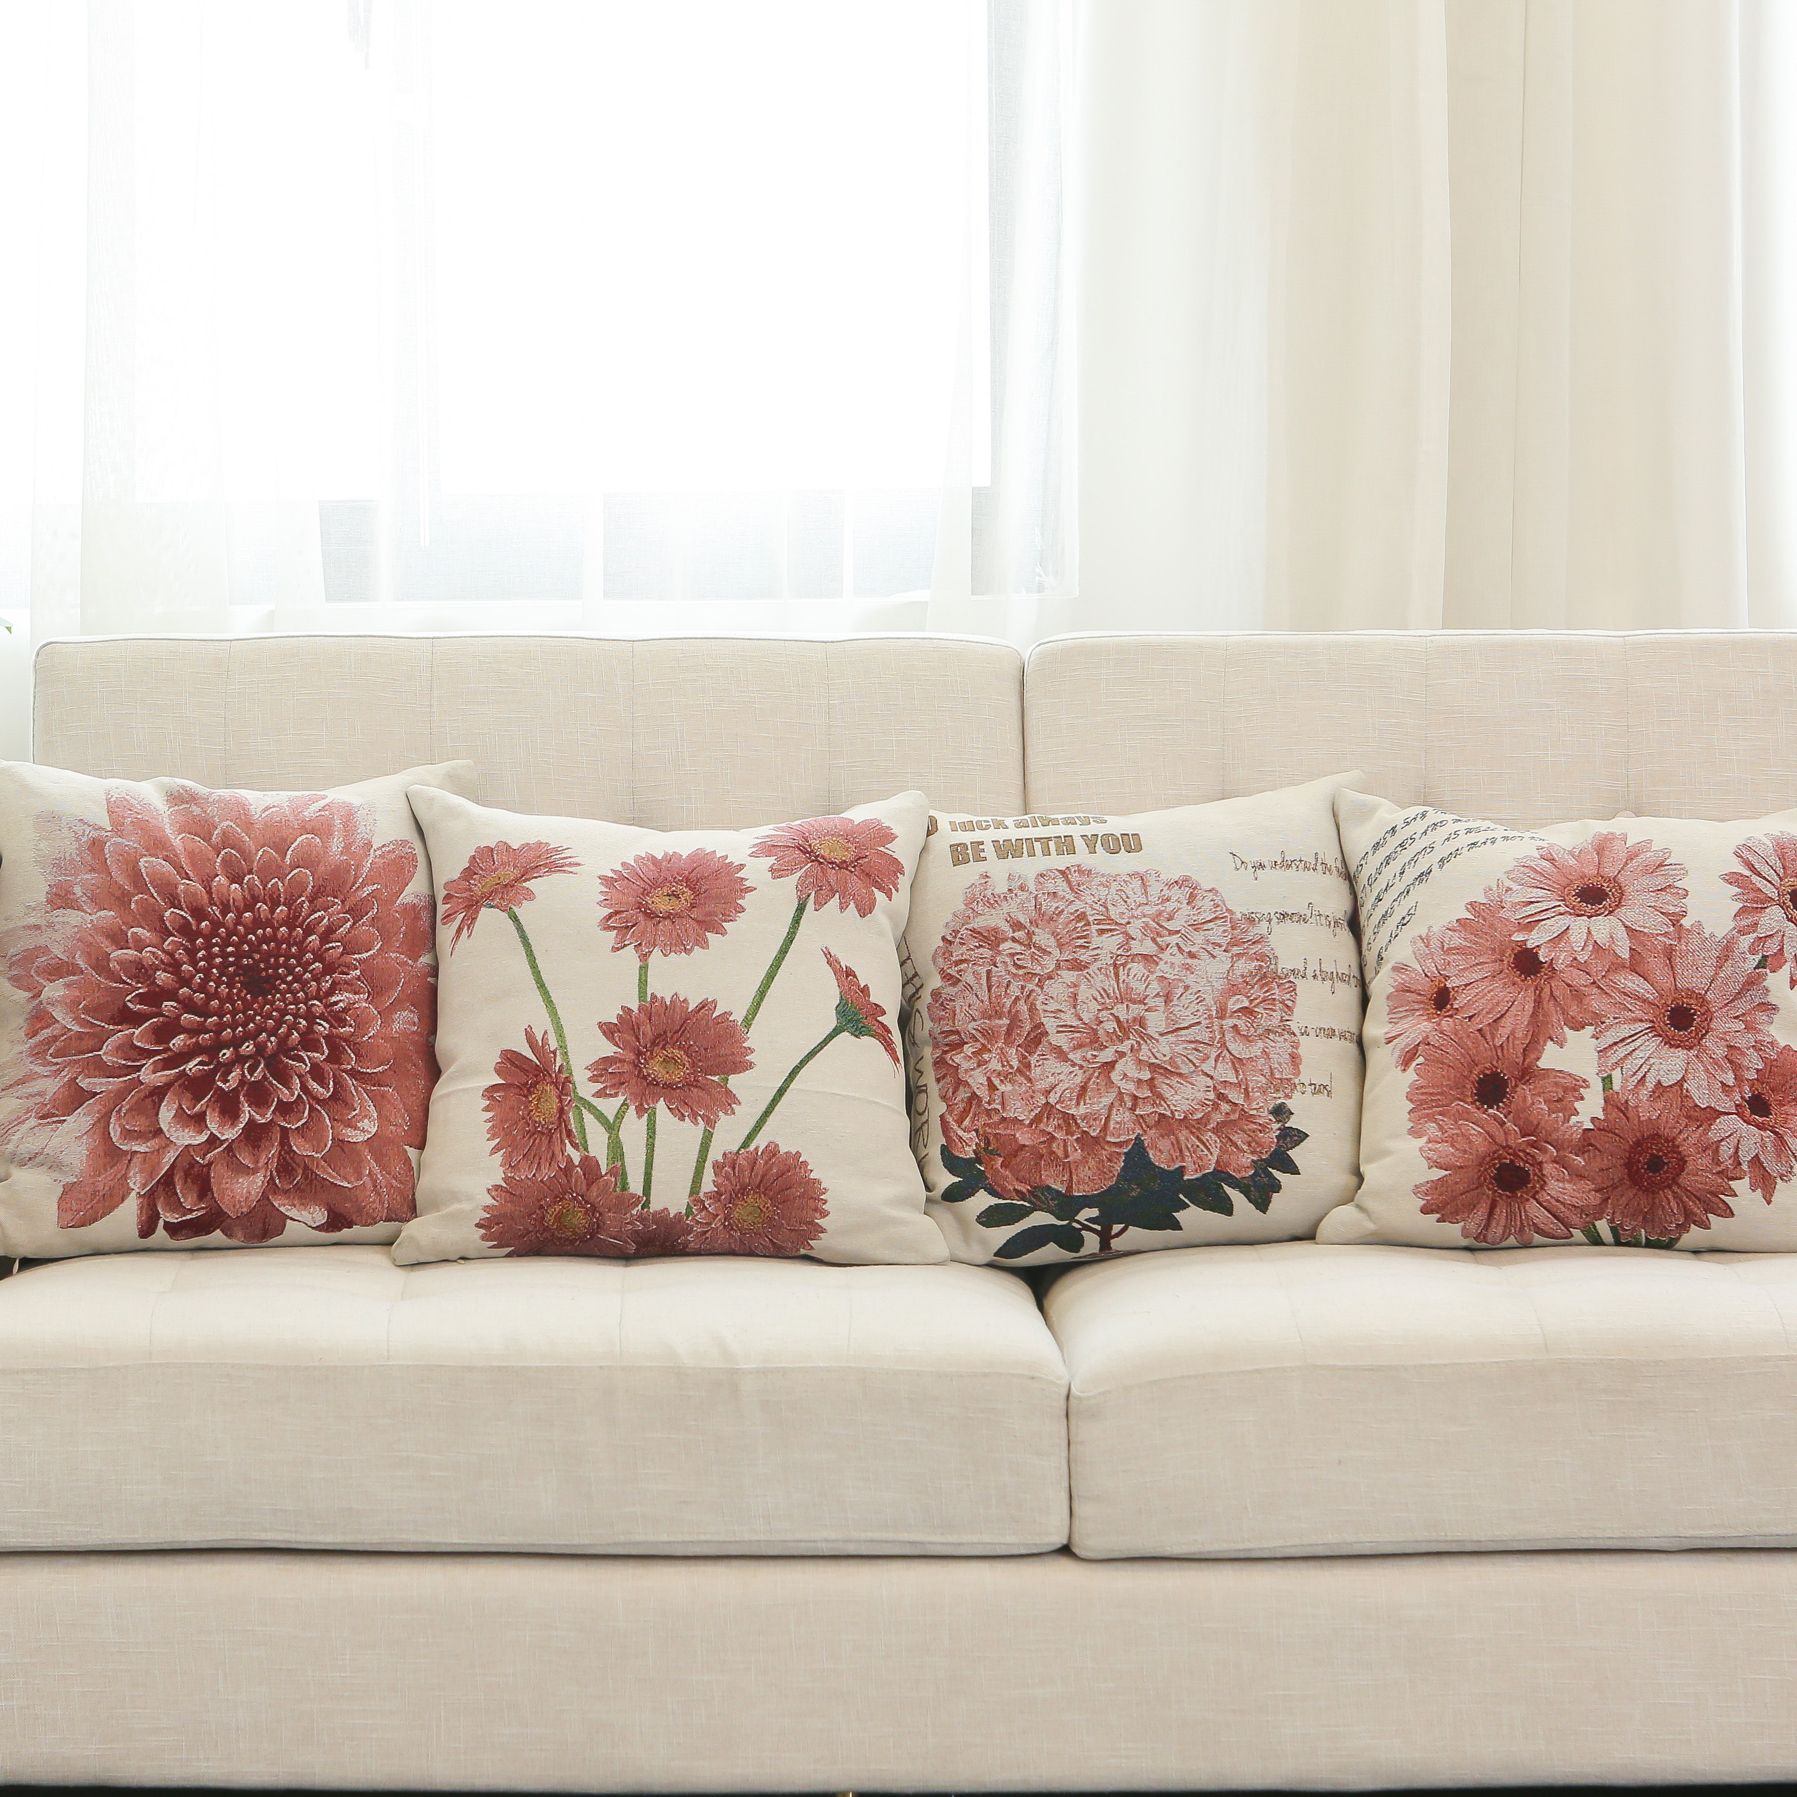 Hot Sale Flower Series Pink Cream Jacquard Floral Throw Pillows Decorative Pillow Set for Sofa Couch Living Room